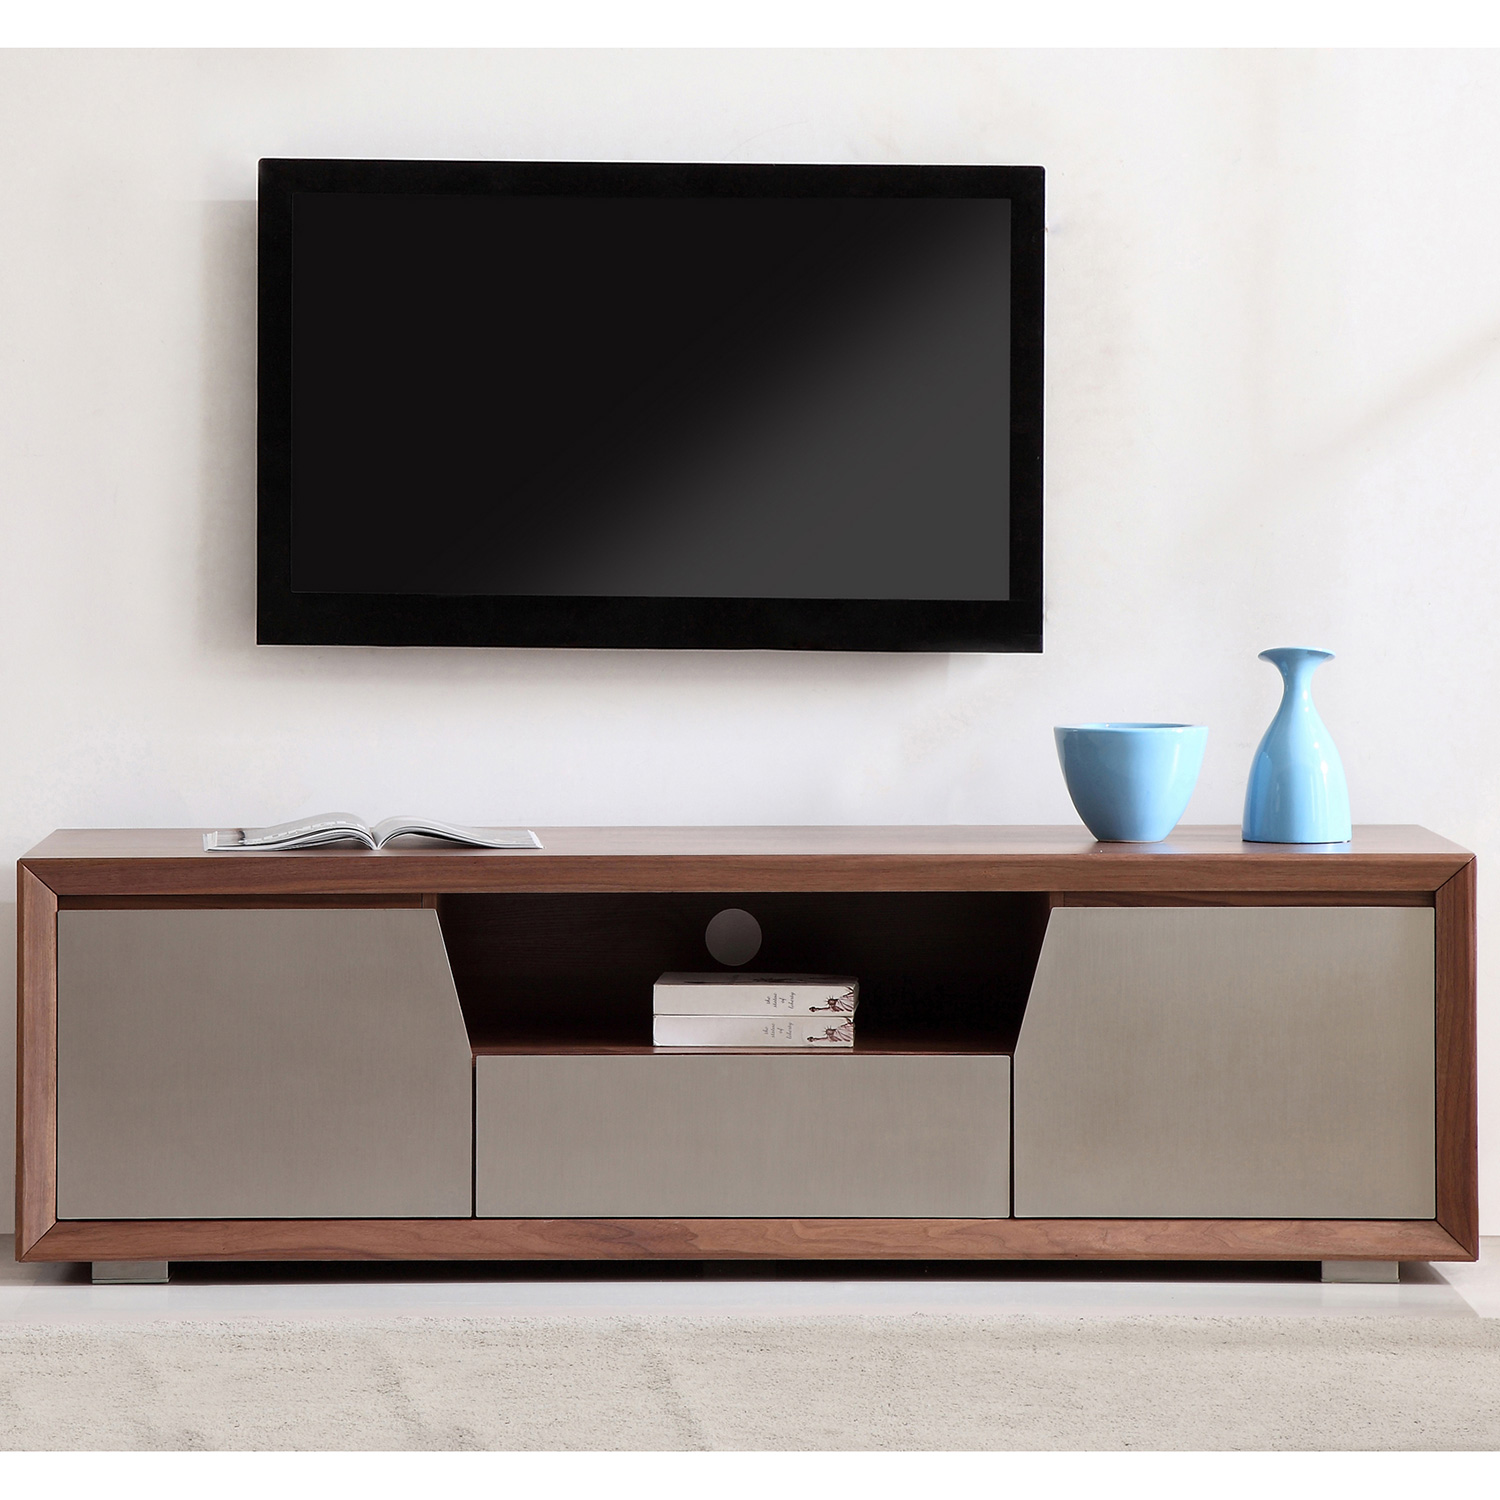 Esquire 75 Contemporary Tv Stand In Light Walnut Stainless Steel